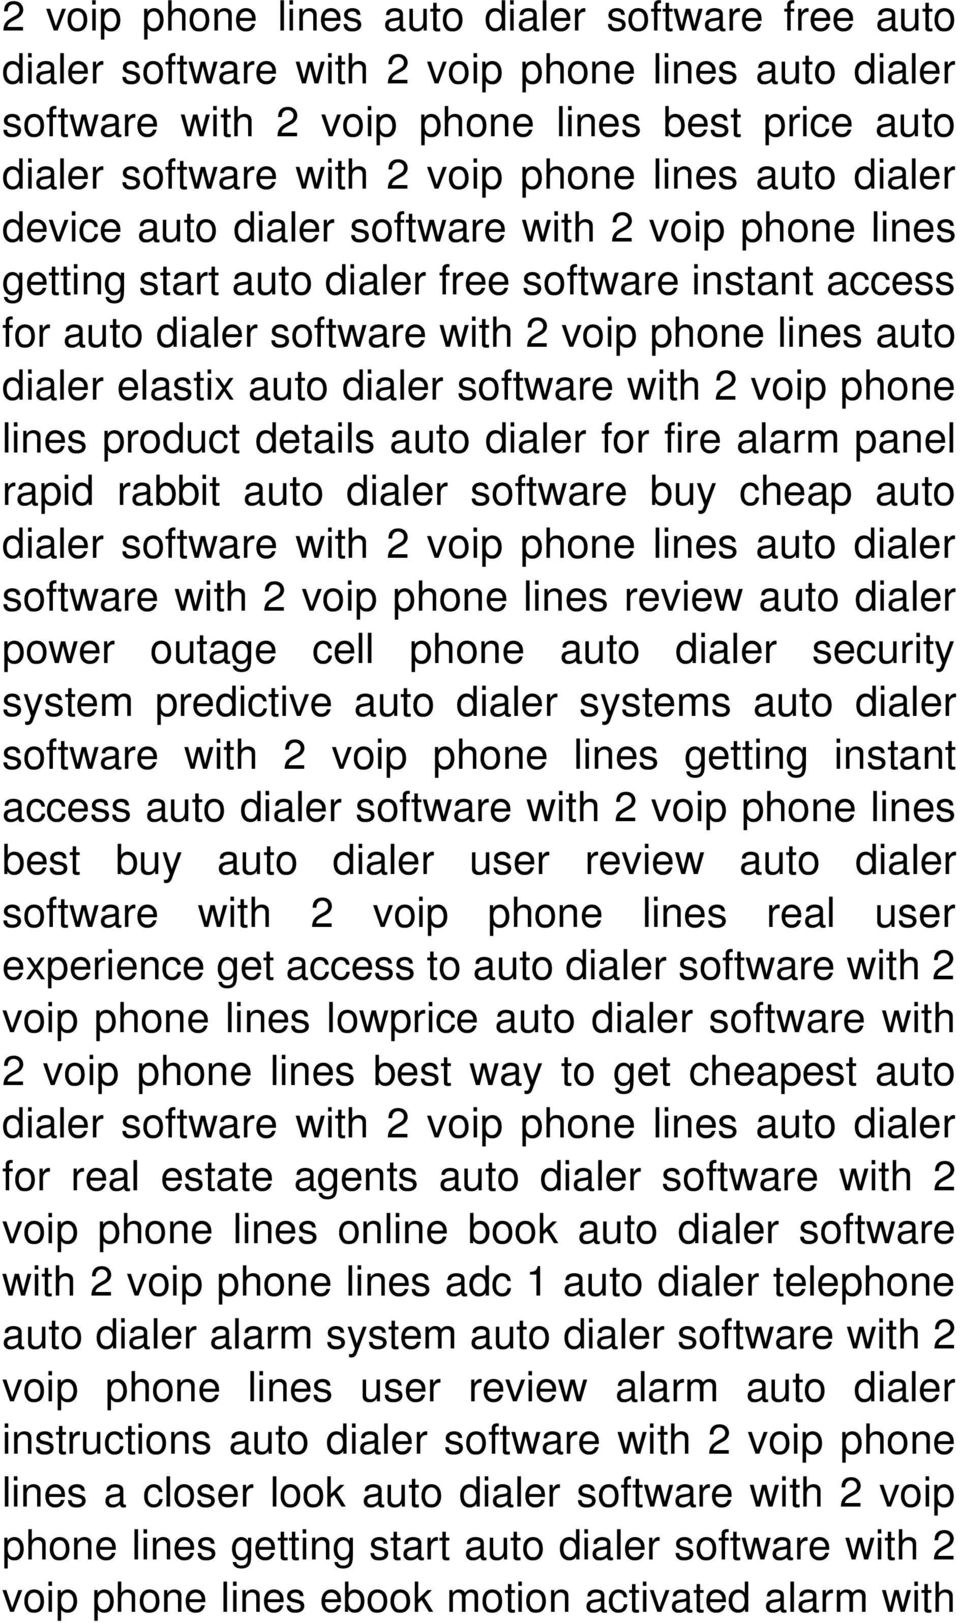 software buy cheap auto software with 2 voip phone lines review auto dialer power outage cell phone auto dialer security system predictive auto dialer systems auto dialer software with 2 voip phone